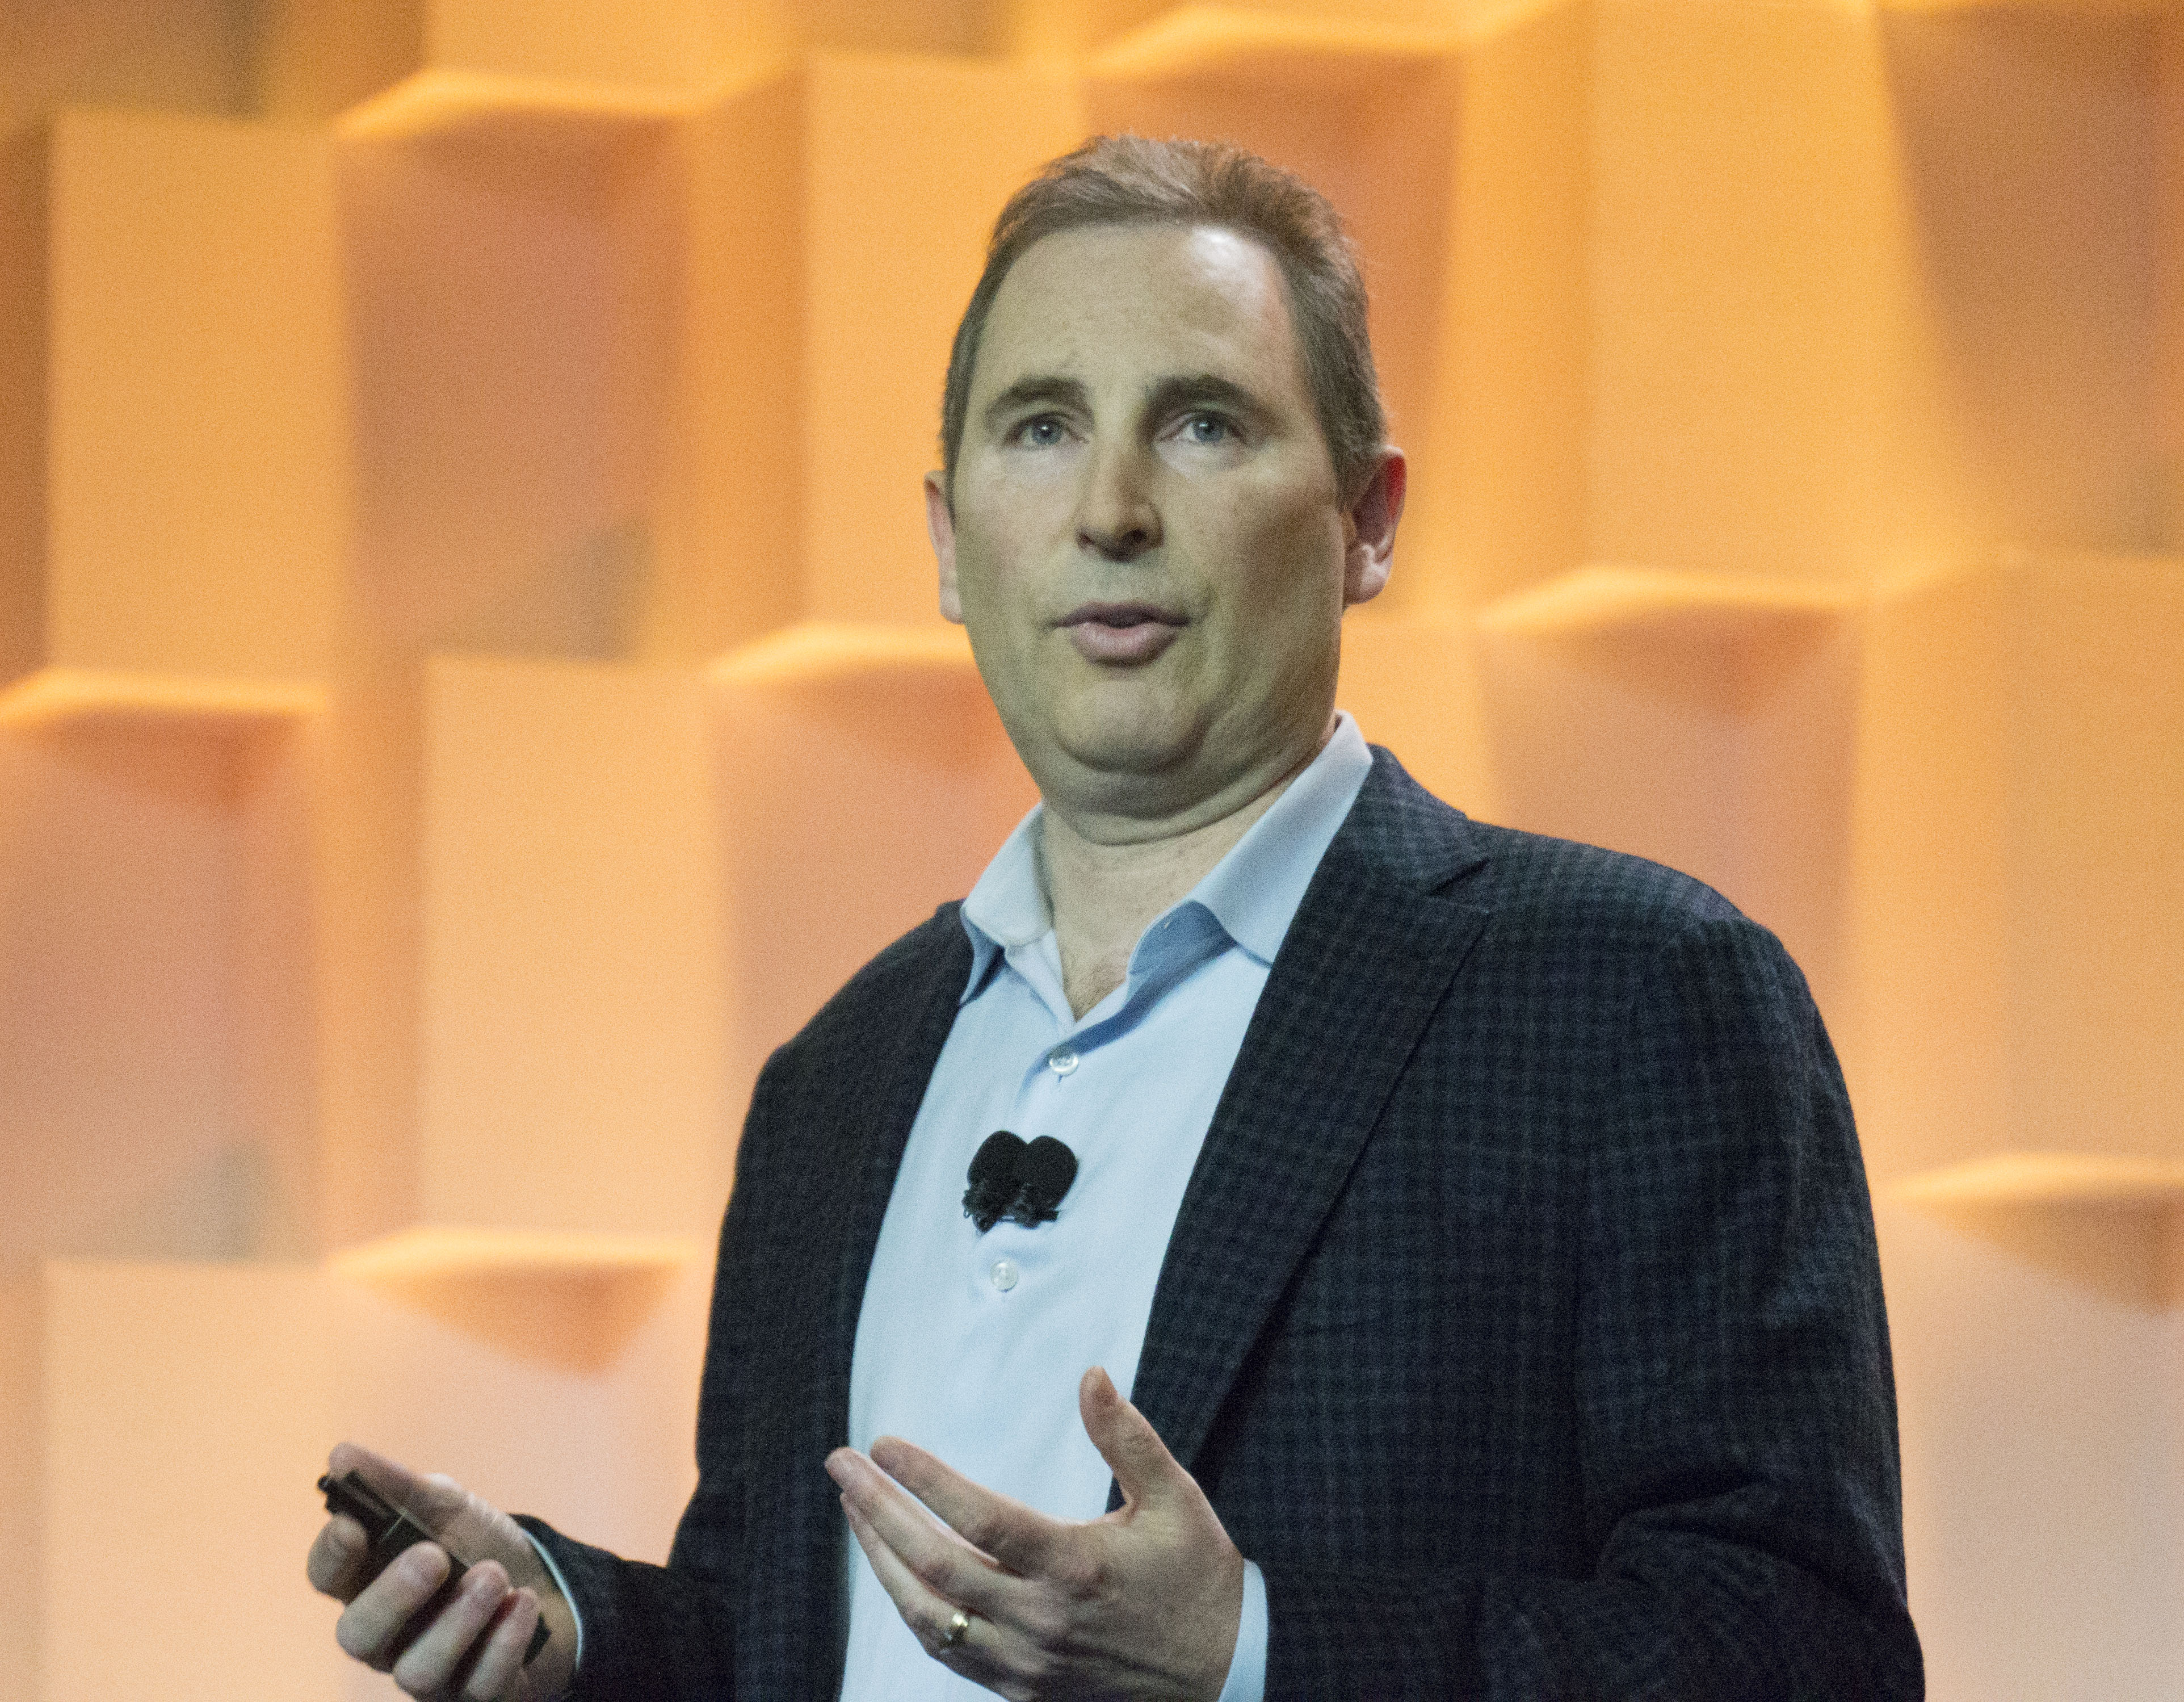 Amazon takes aim at Microsoft's big data plans with new Machine Learning service